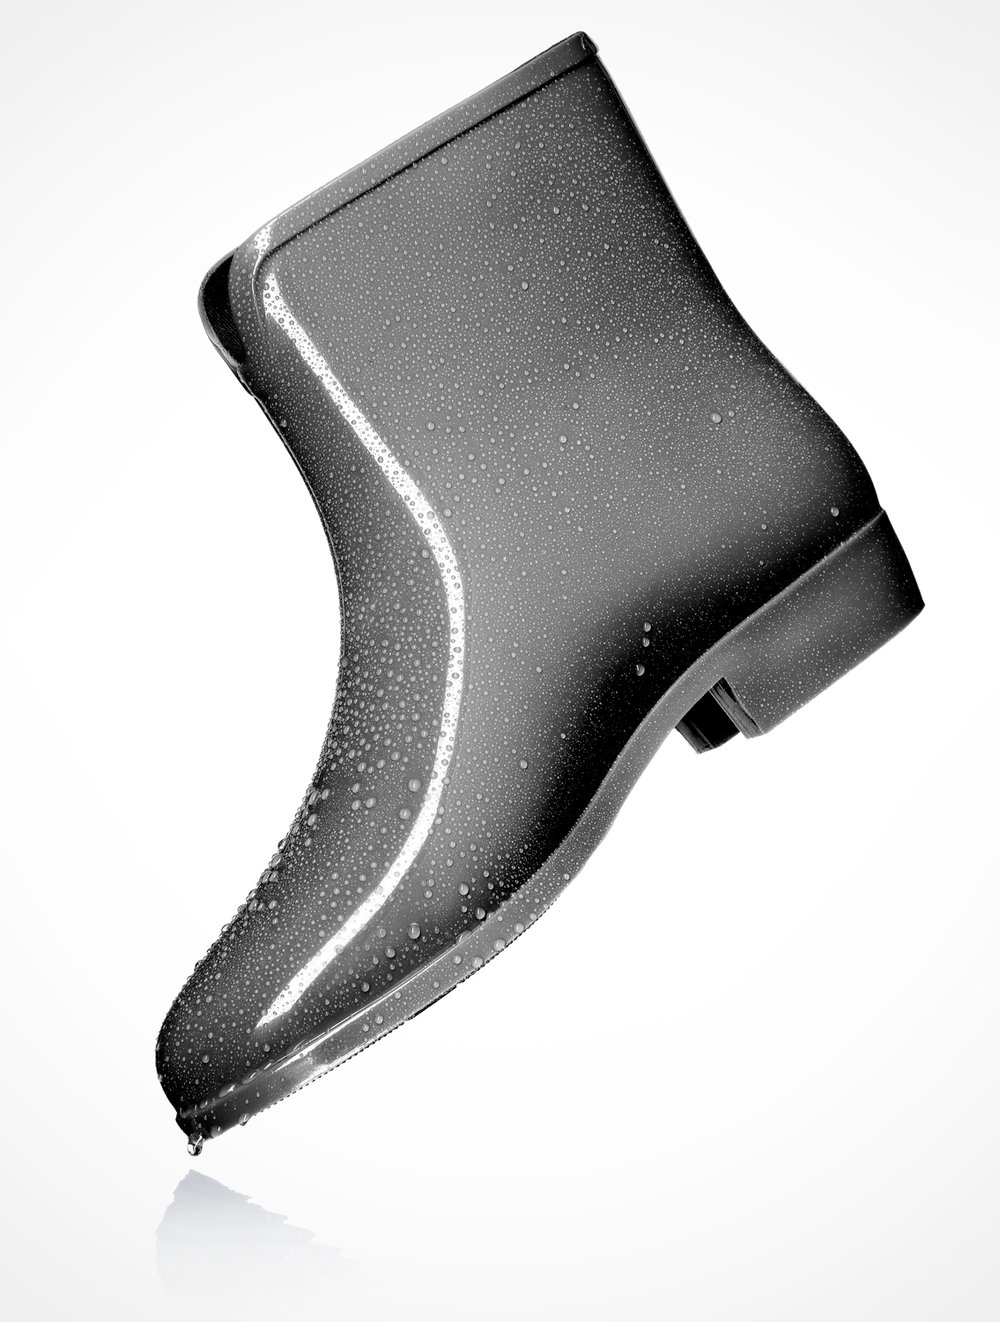 SamScottHunter_grey-boot.jpg